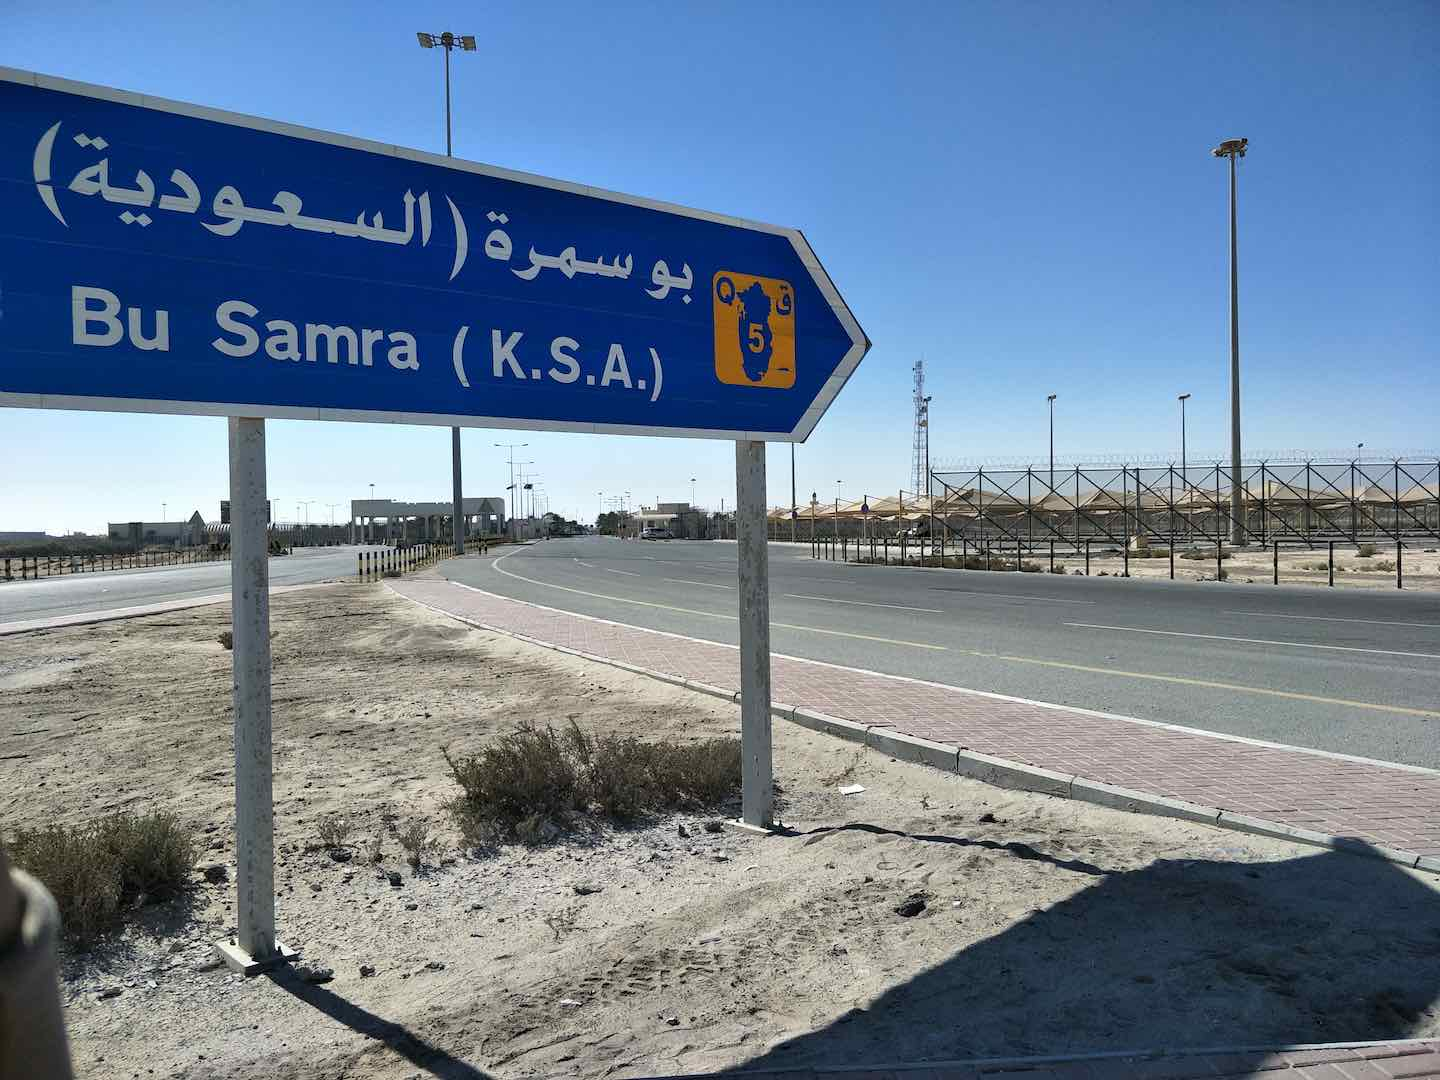 The photo Qatar police doesn't want you to see. The once busy border crossing between Qatar and Saudi Arabia.